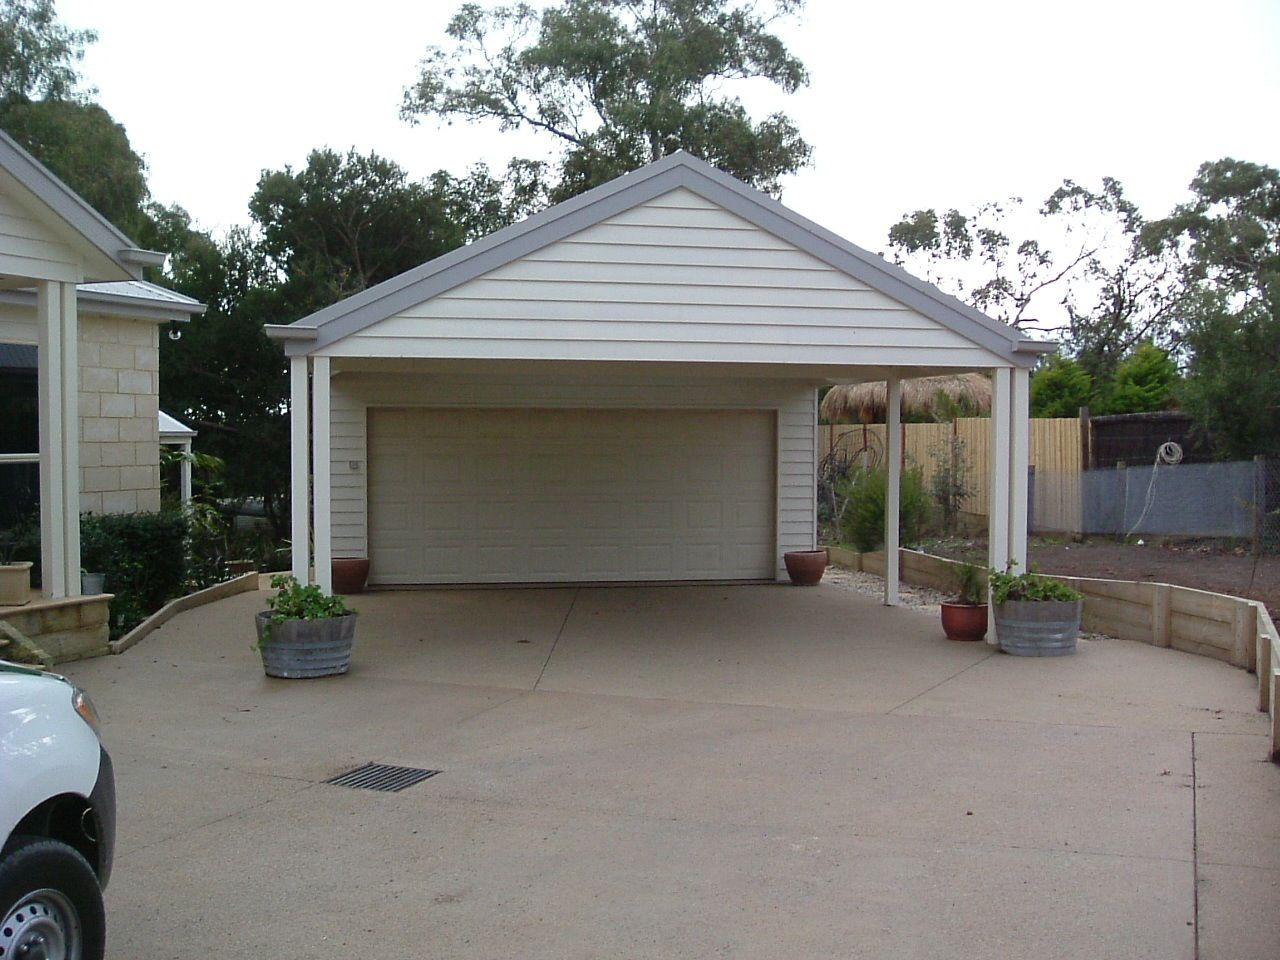 Carport ideas carport ideas pinterest carport ideas for House with carport